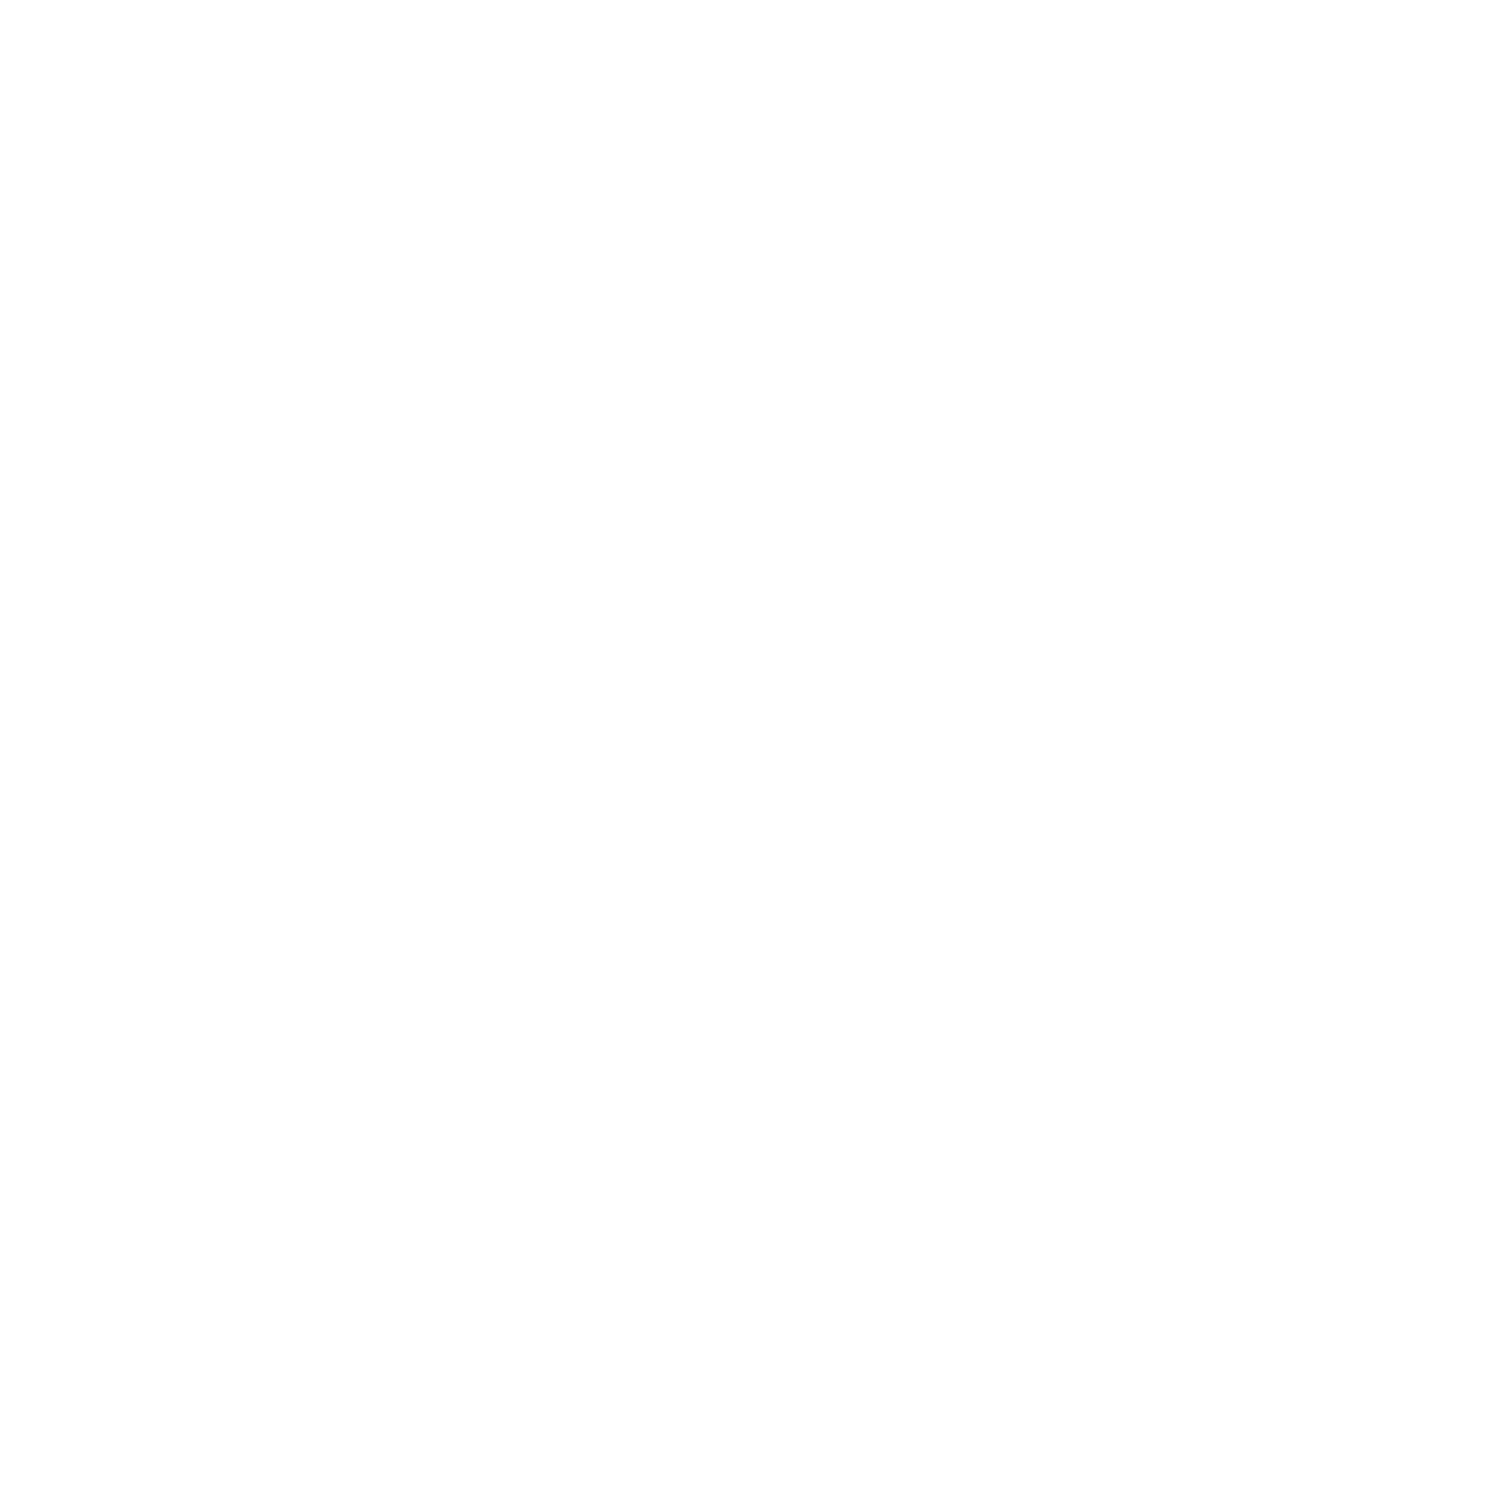 Network Brewery Craft Beer Taproom in Santa Ana, CA